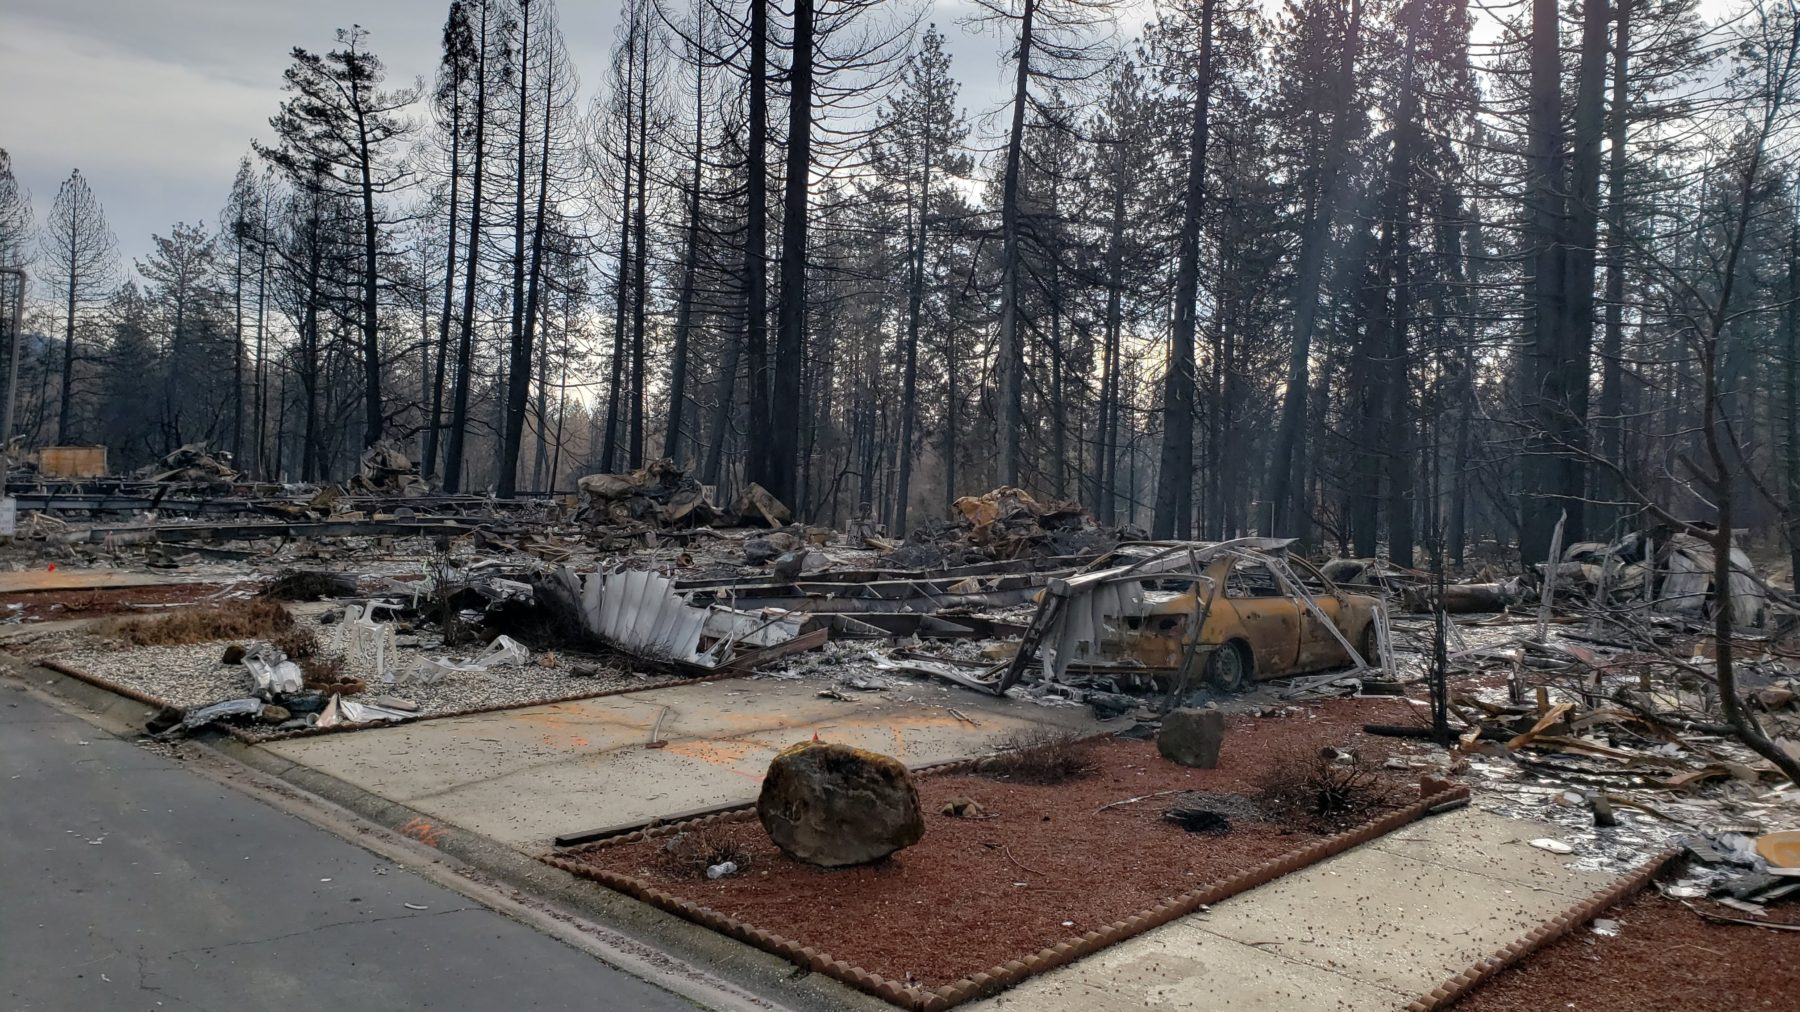 Lots sit empty after the Camp Fire burned through neighborhoods in Paradise, CA on Nov. 8, 2018. (Andrew MacCalla/Direct Relief)